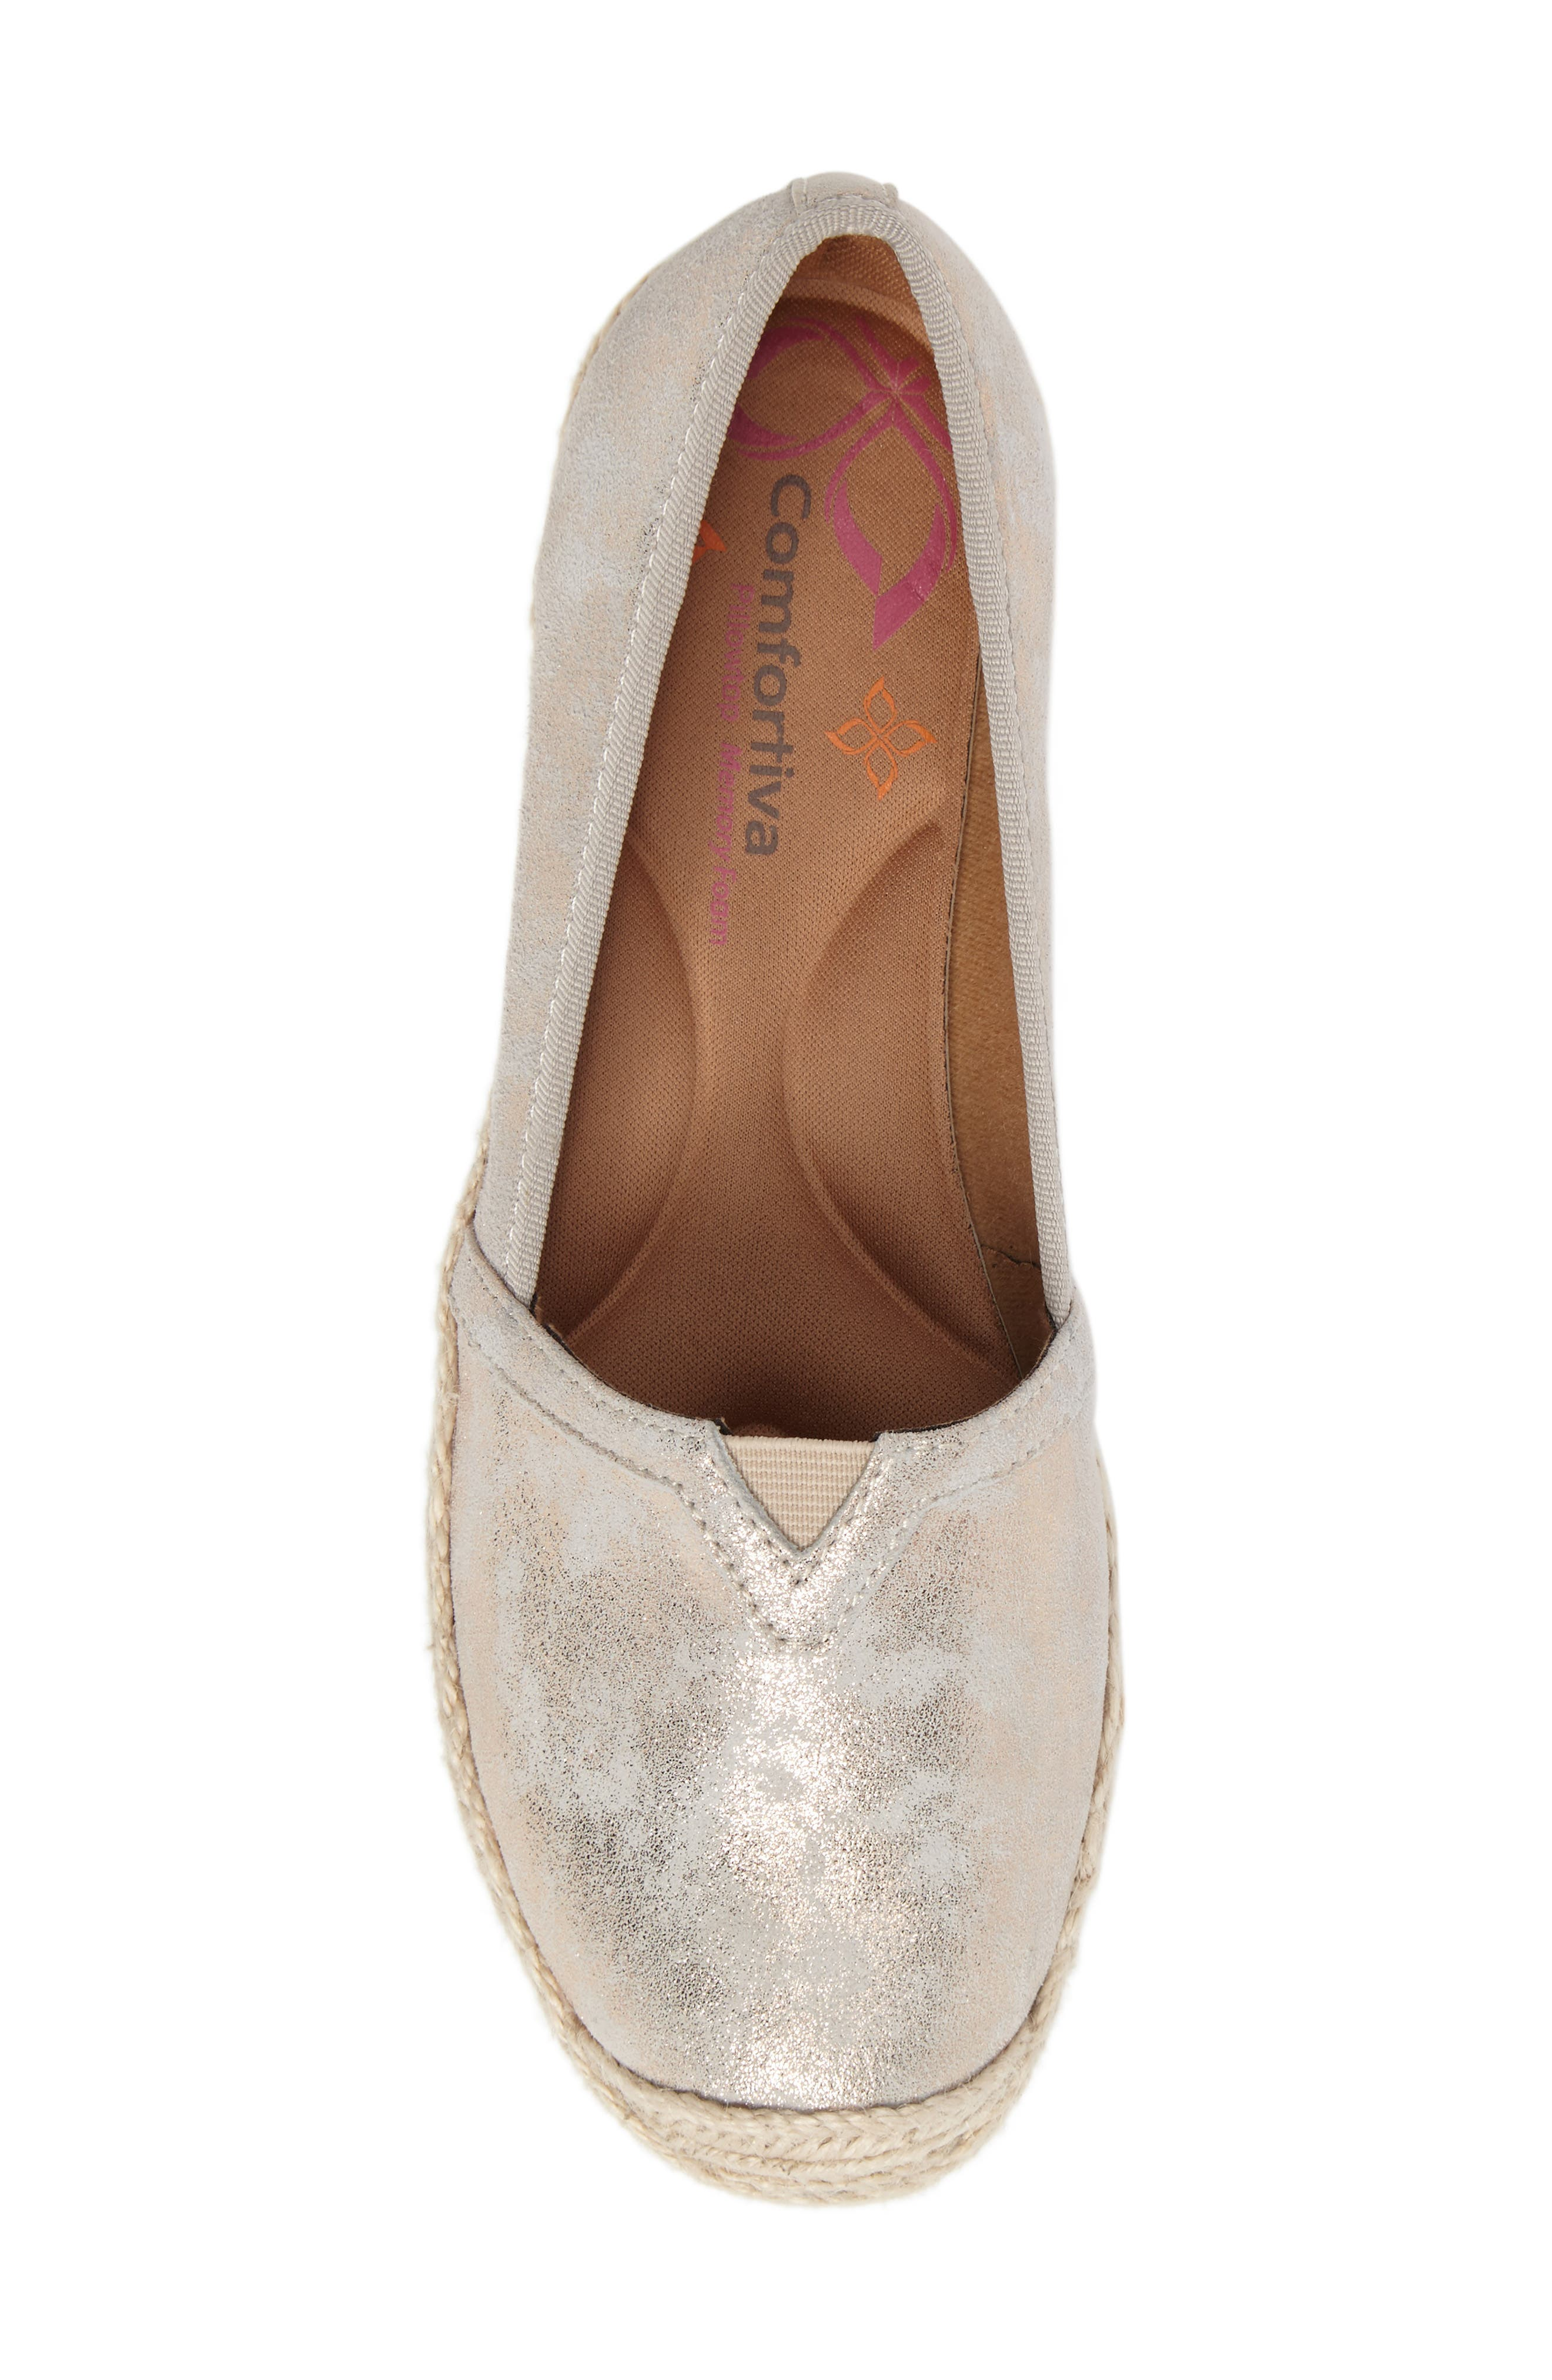 Sheridan Espadrille Flat,                             Alternate thumbnail 5, color,                             IVORY SUEDE